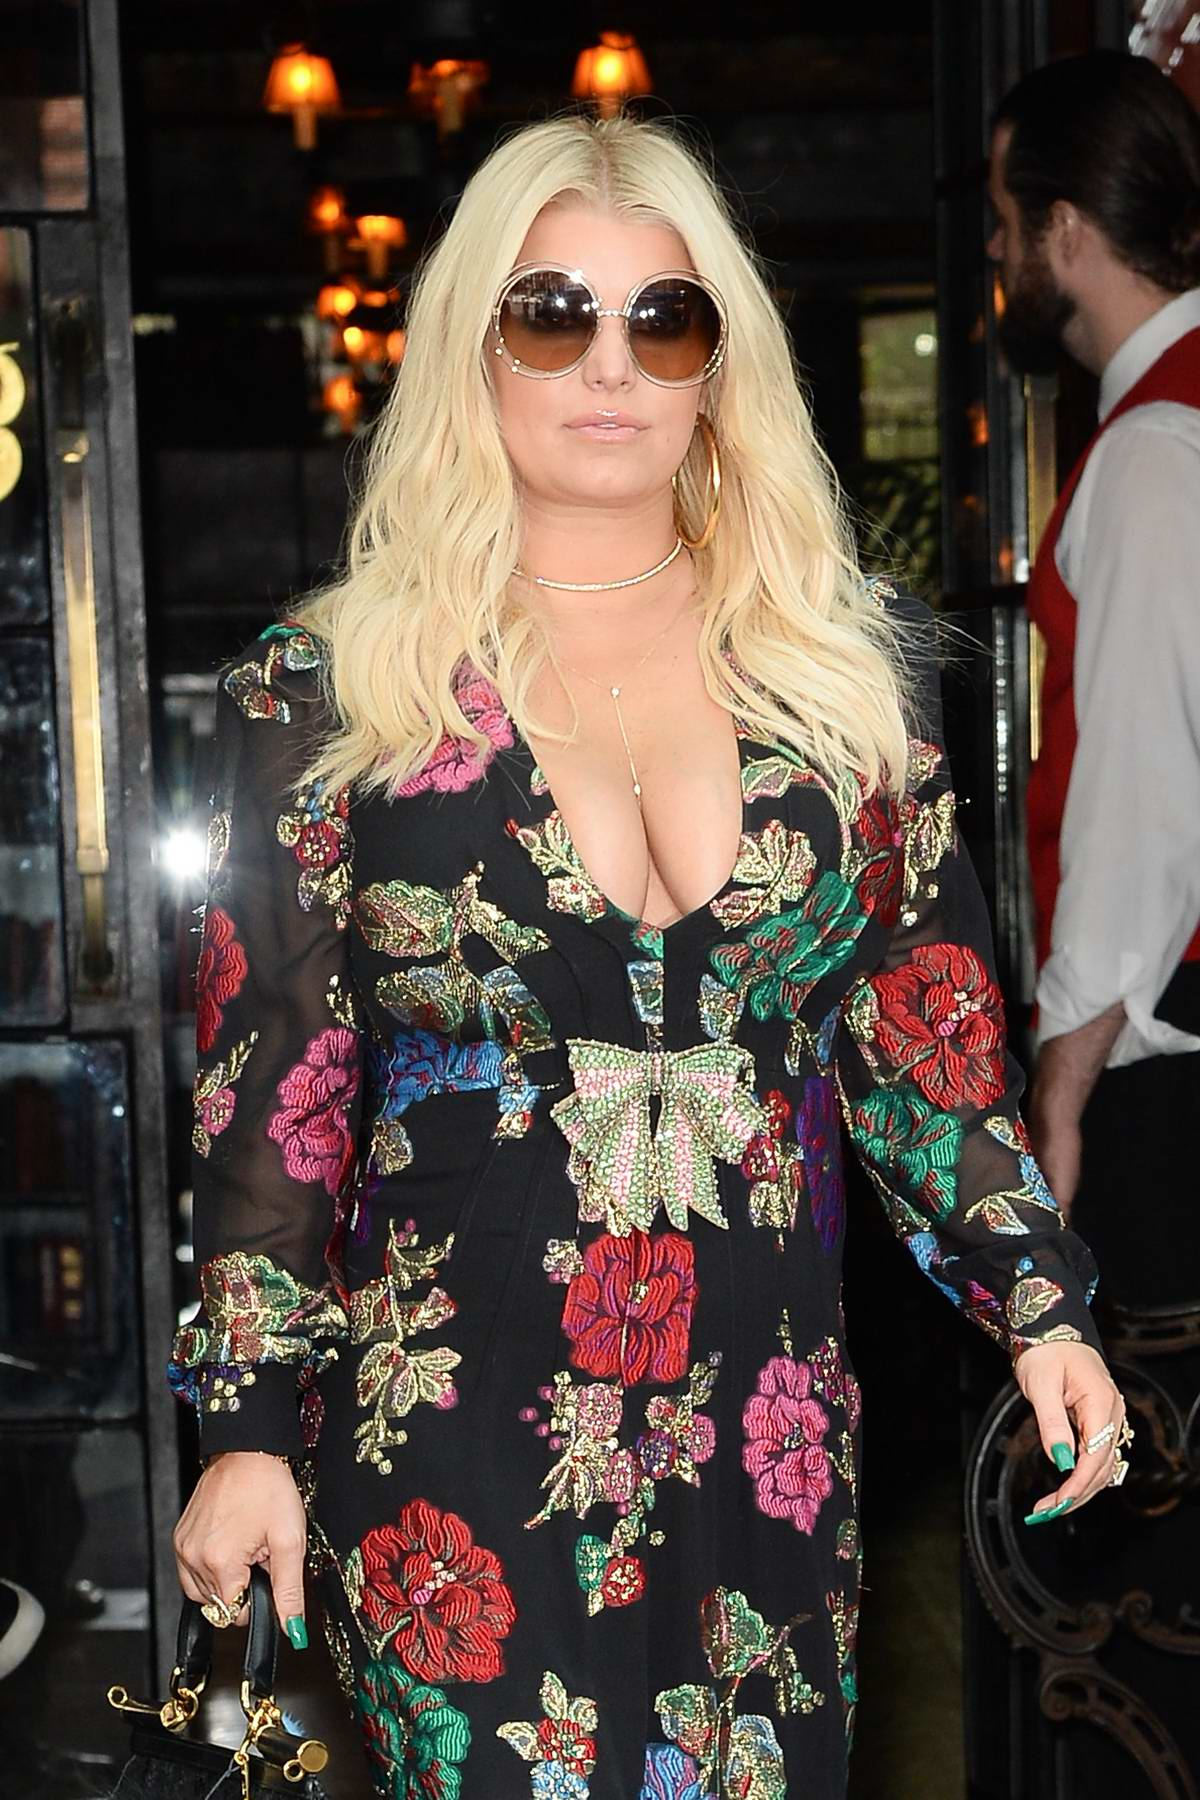 Jessica Simpson in a Floral dress leaving her Hotel in New York